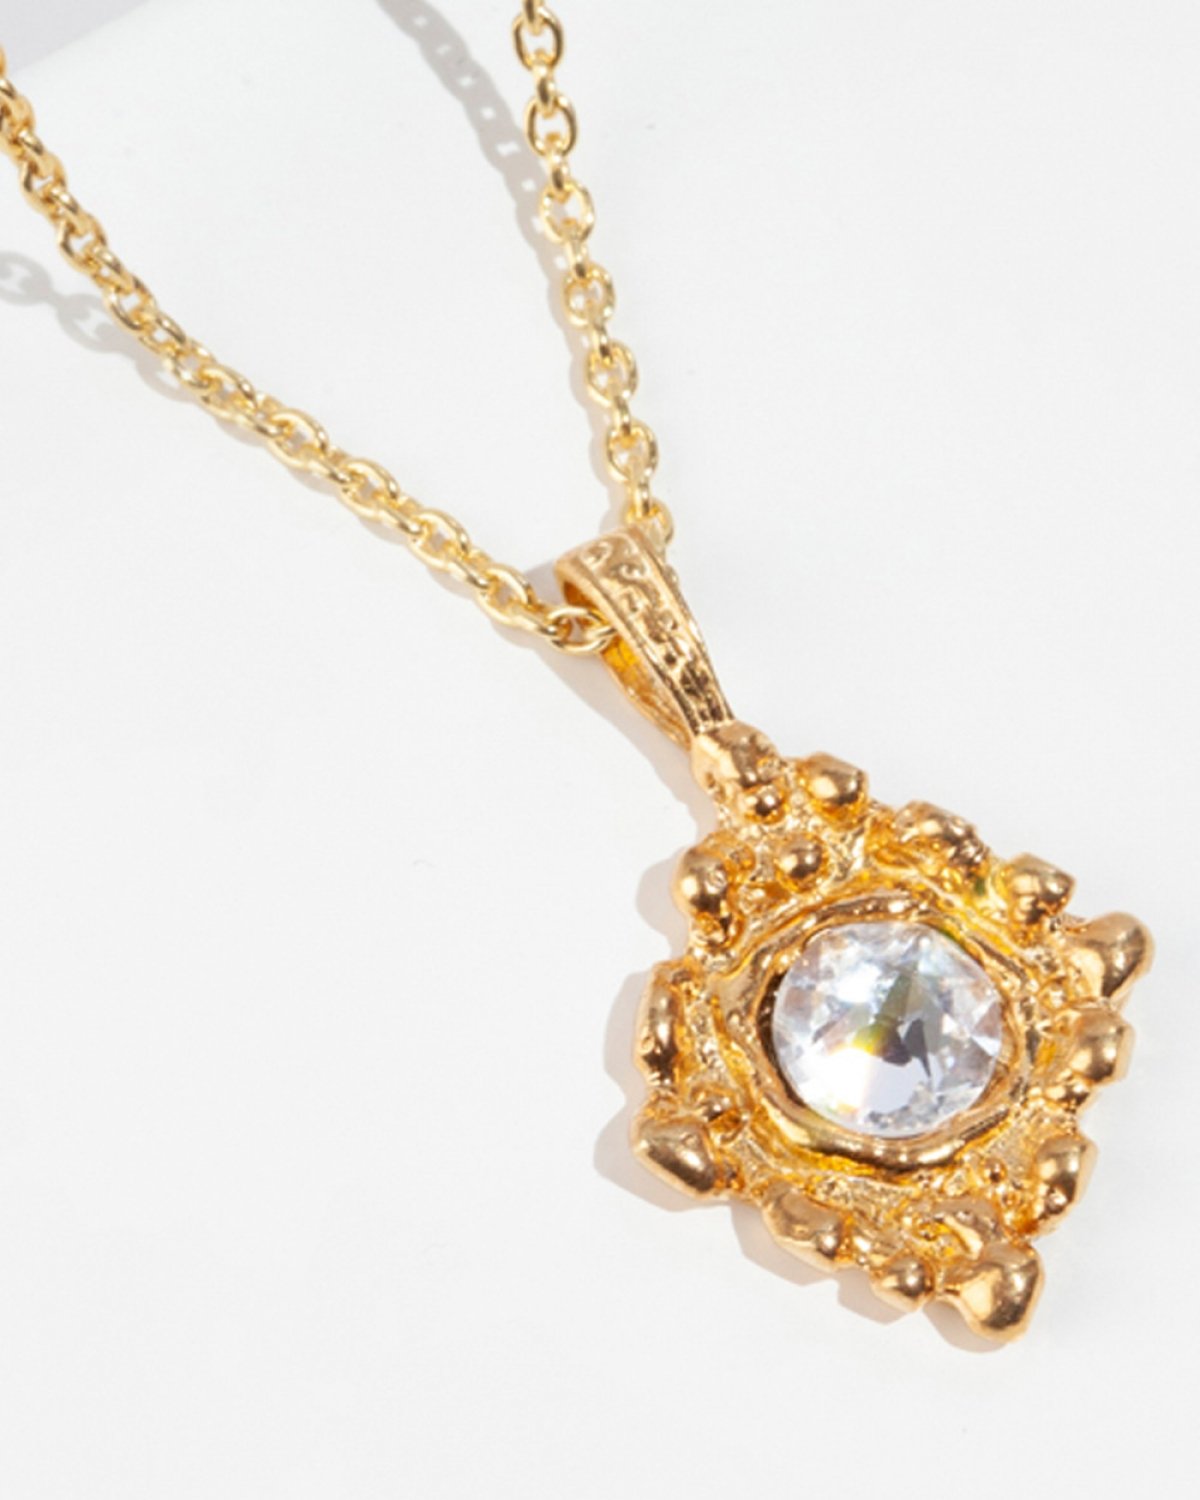 MUSCA Gold Pendant/Necklace